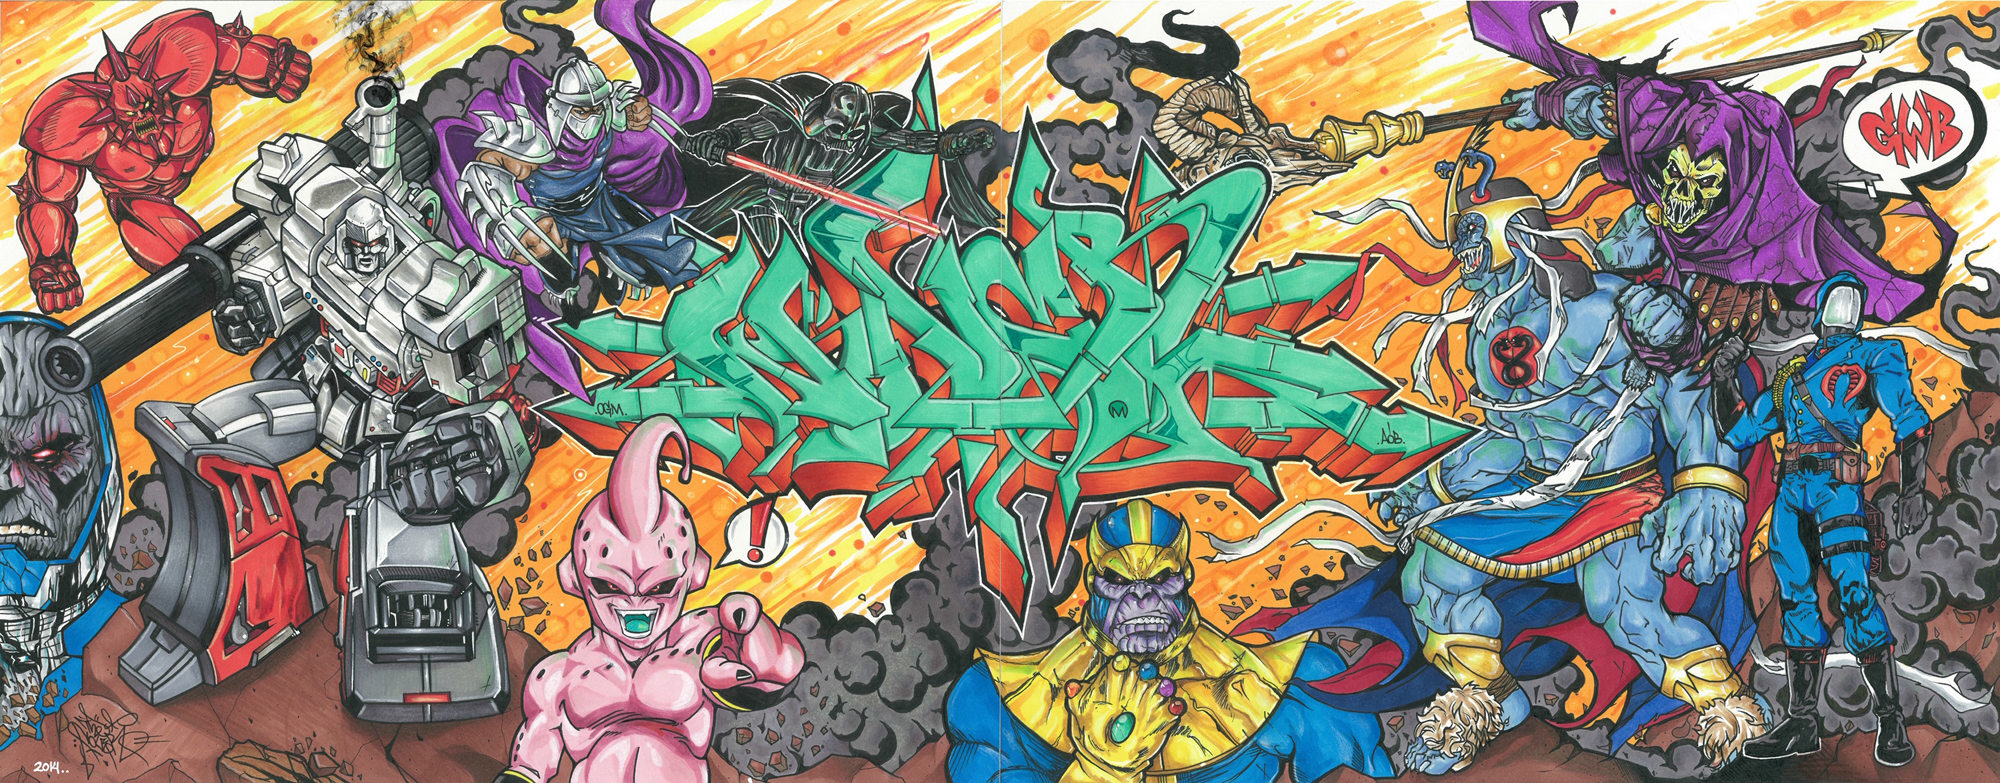 Greatest Villains by Nover, markers & pen on paper, 2014.